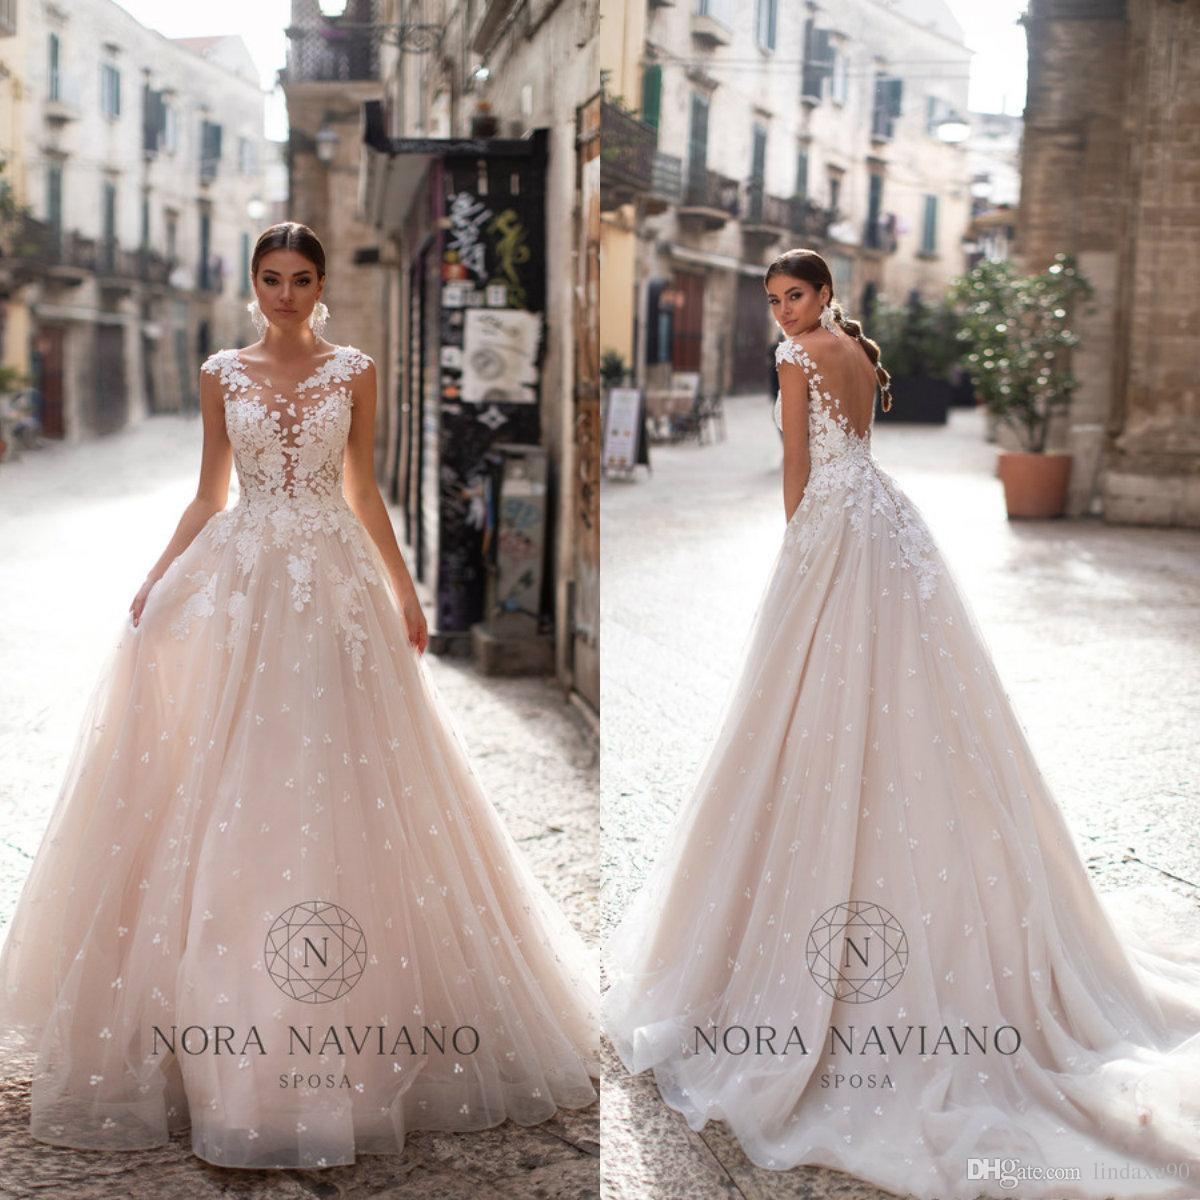 2020 Beach A Line Wedding Dresses Plus Size Lace Appliqued Bridal Gowns Vestidos De Novia Backless Beach Wedding Dress